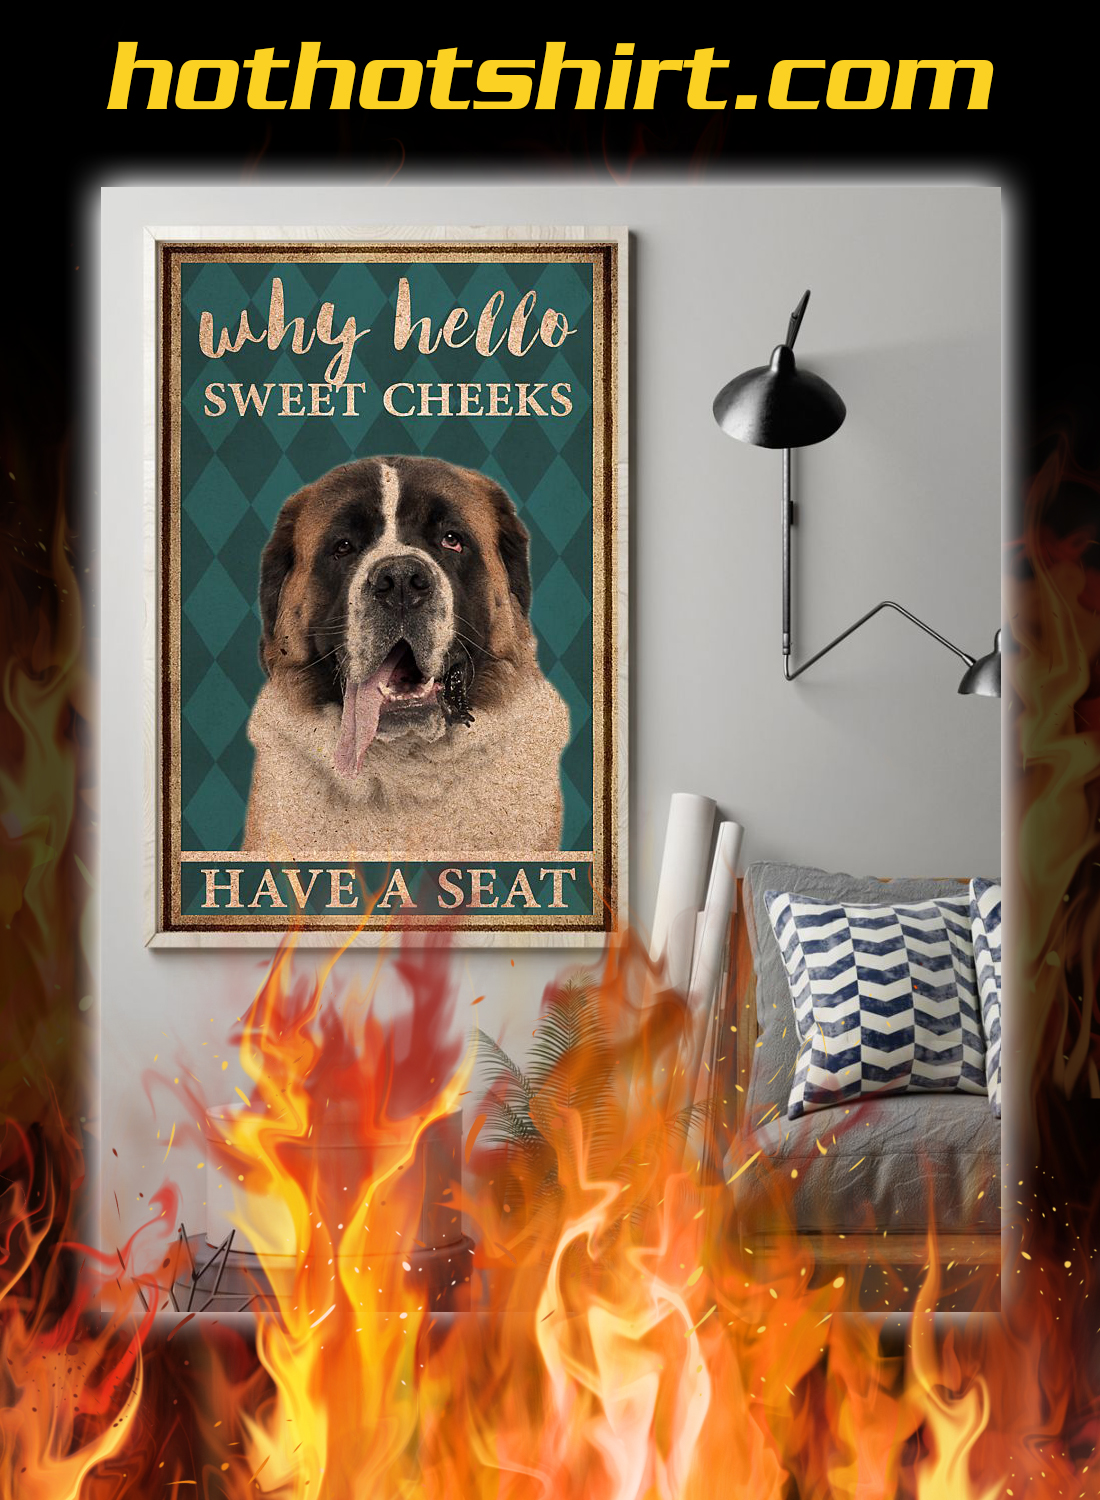 St bernard why hello sweet cheeks have a seat poster 1